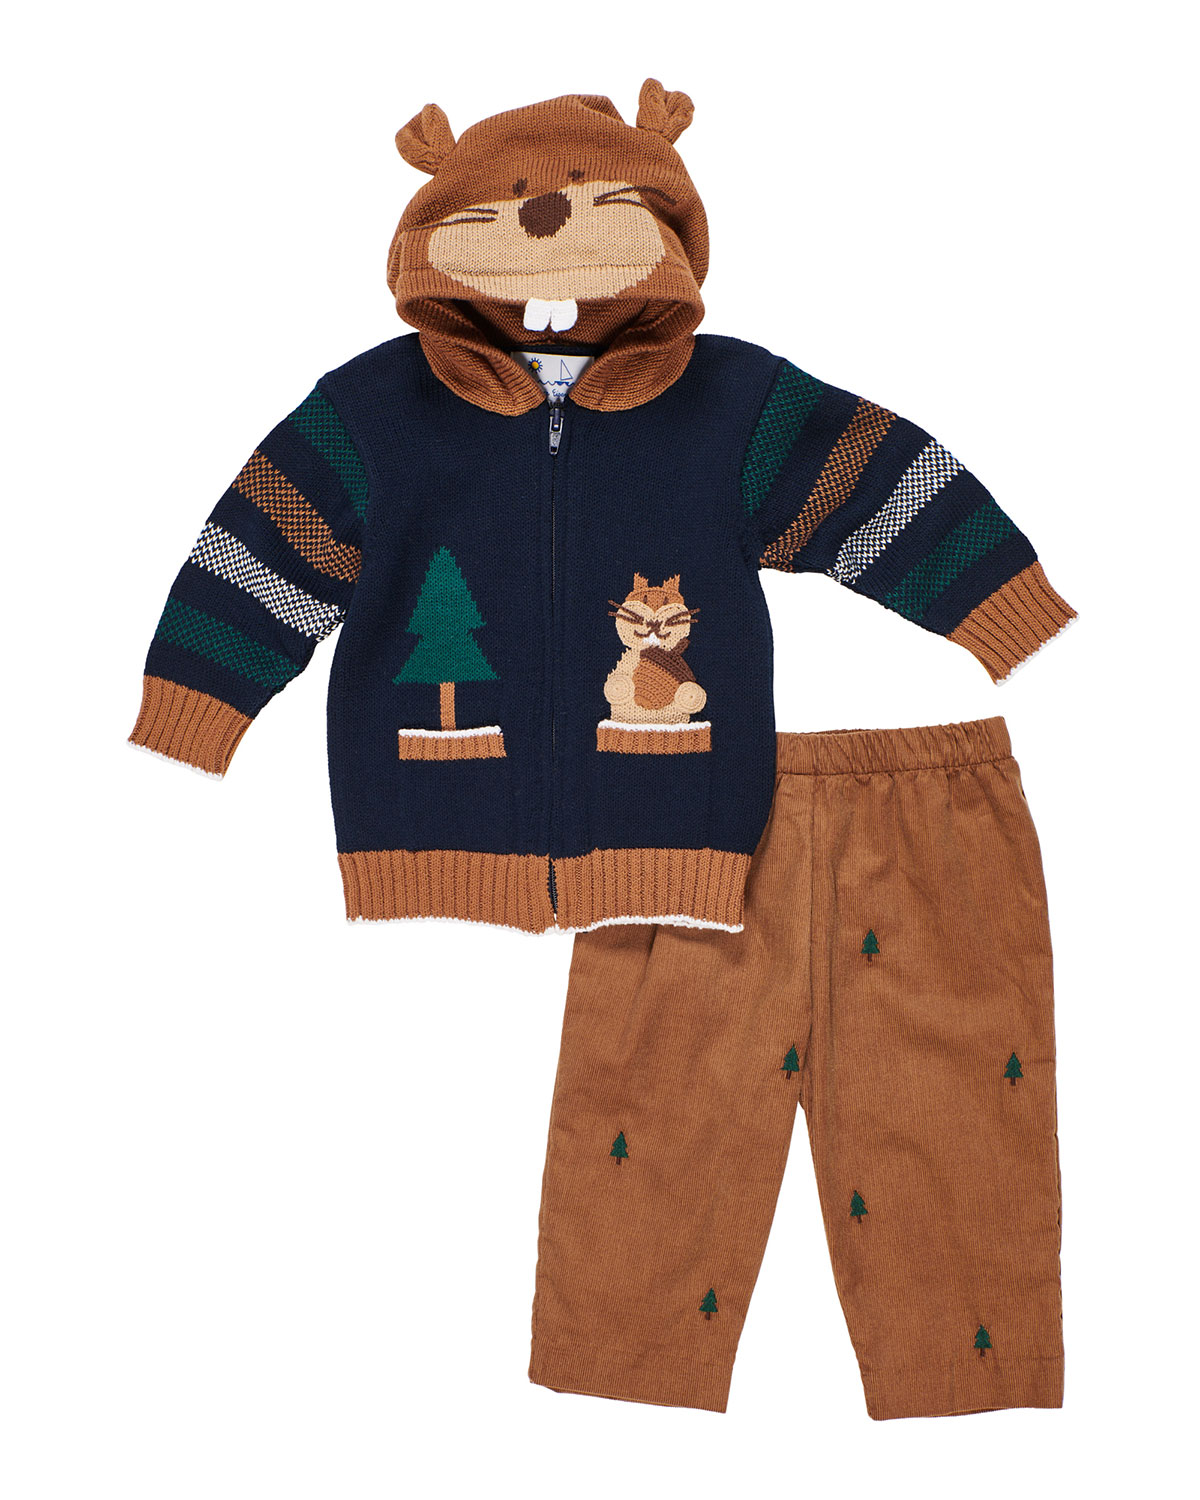 Florence Eiseman Pants HOODED ZIP-UP SQUIRREL SWEATER W/ TREE EMBROIDERED PANTS